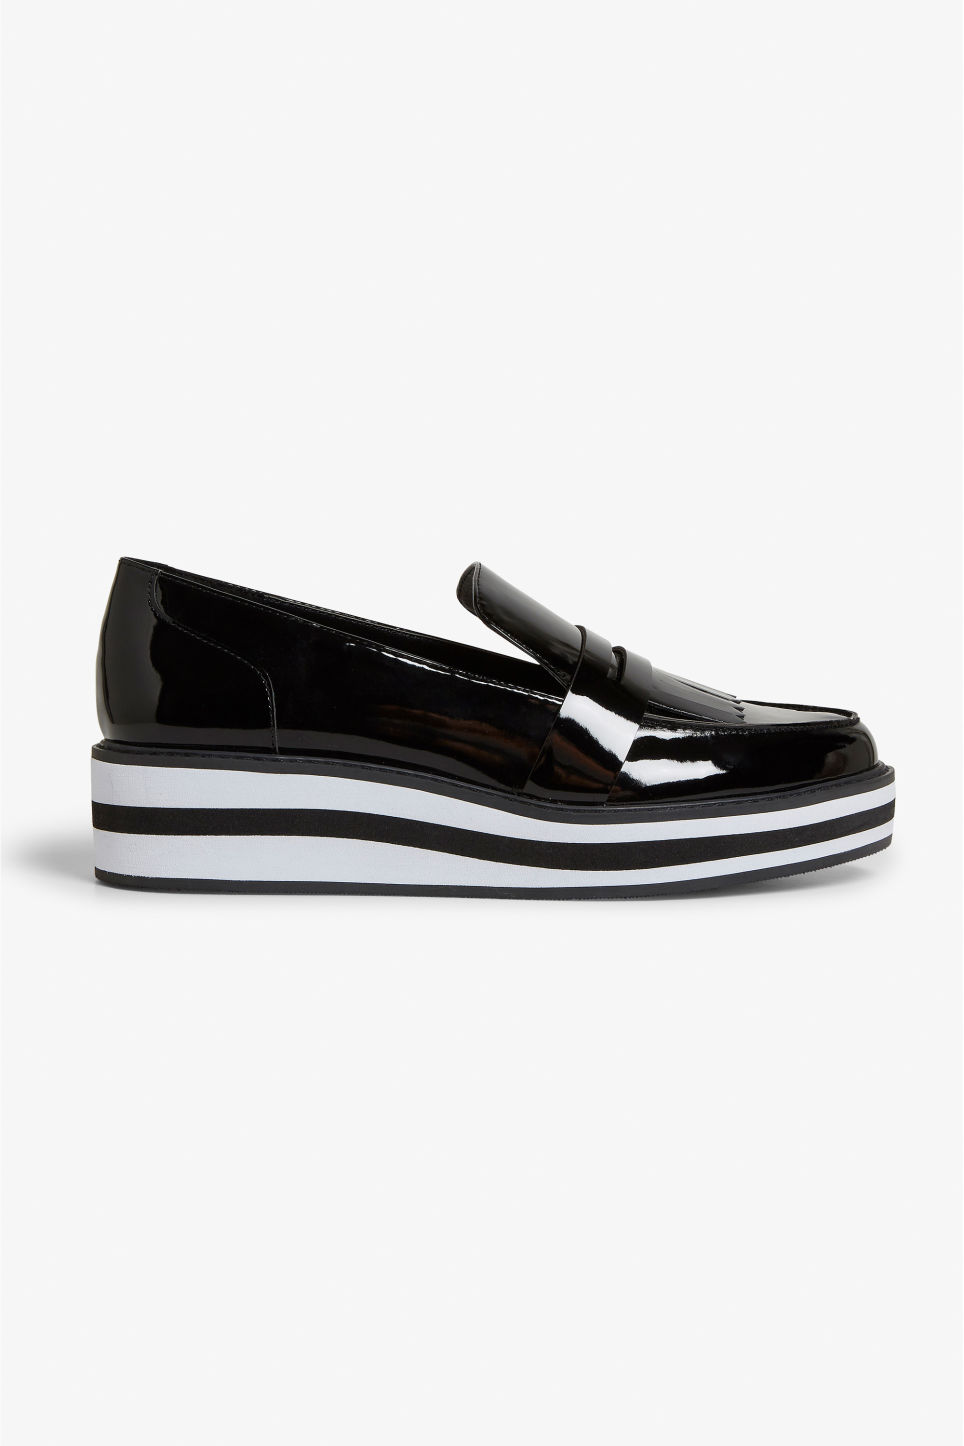 Detailed image of Monki striped platform loafers in black